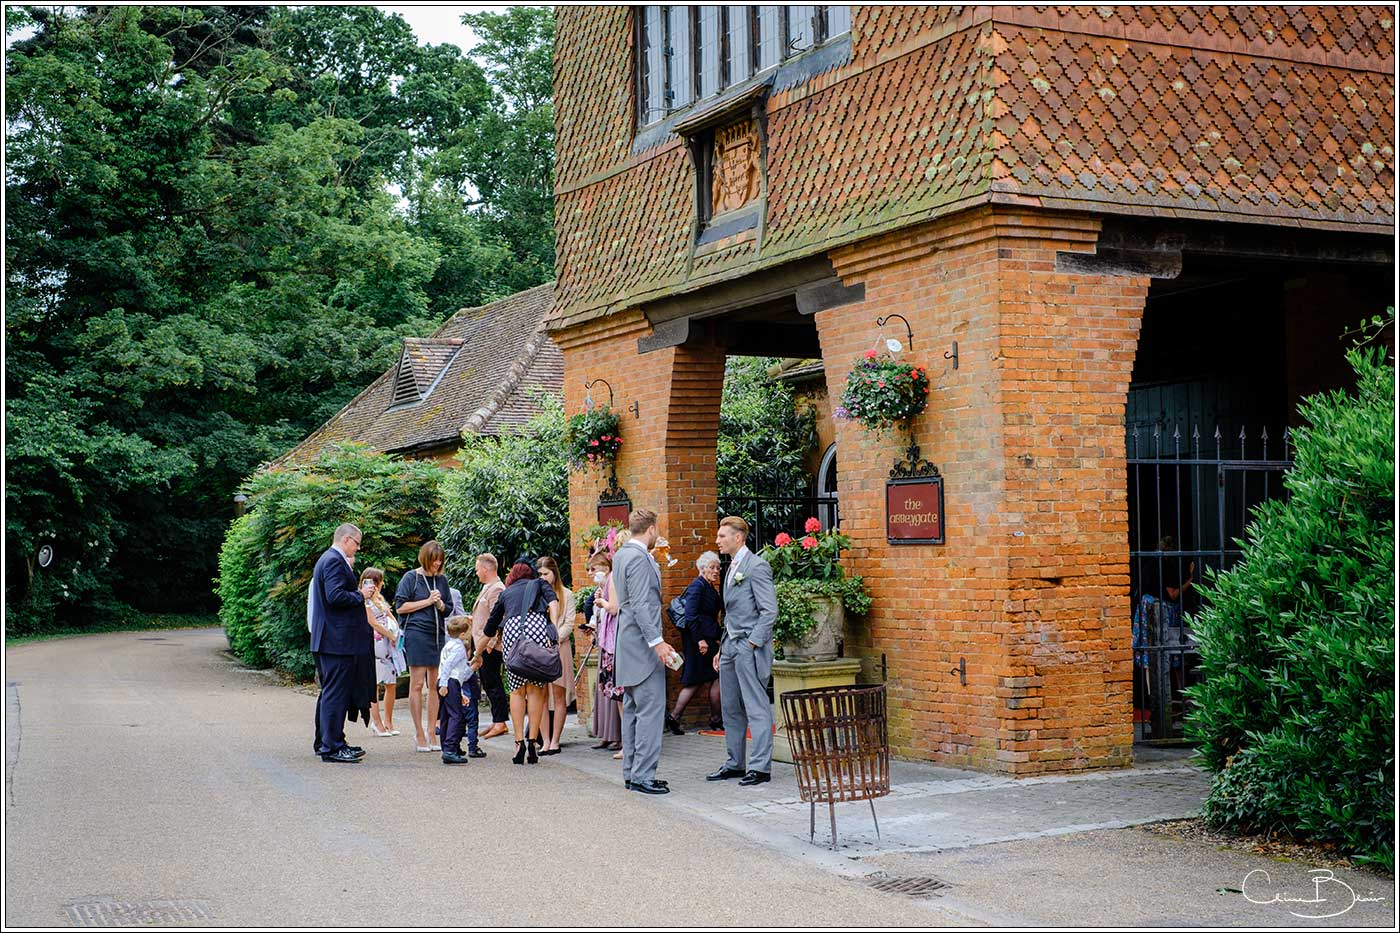 Coombe Abbey wedding photography showing guests waiting outside the Abbeygate